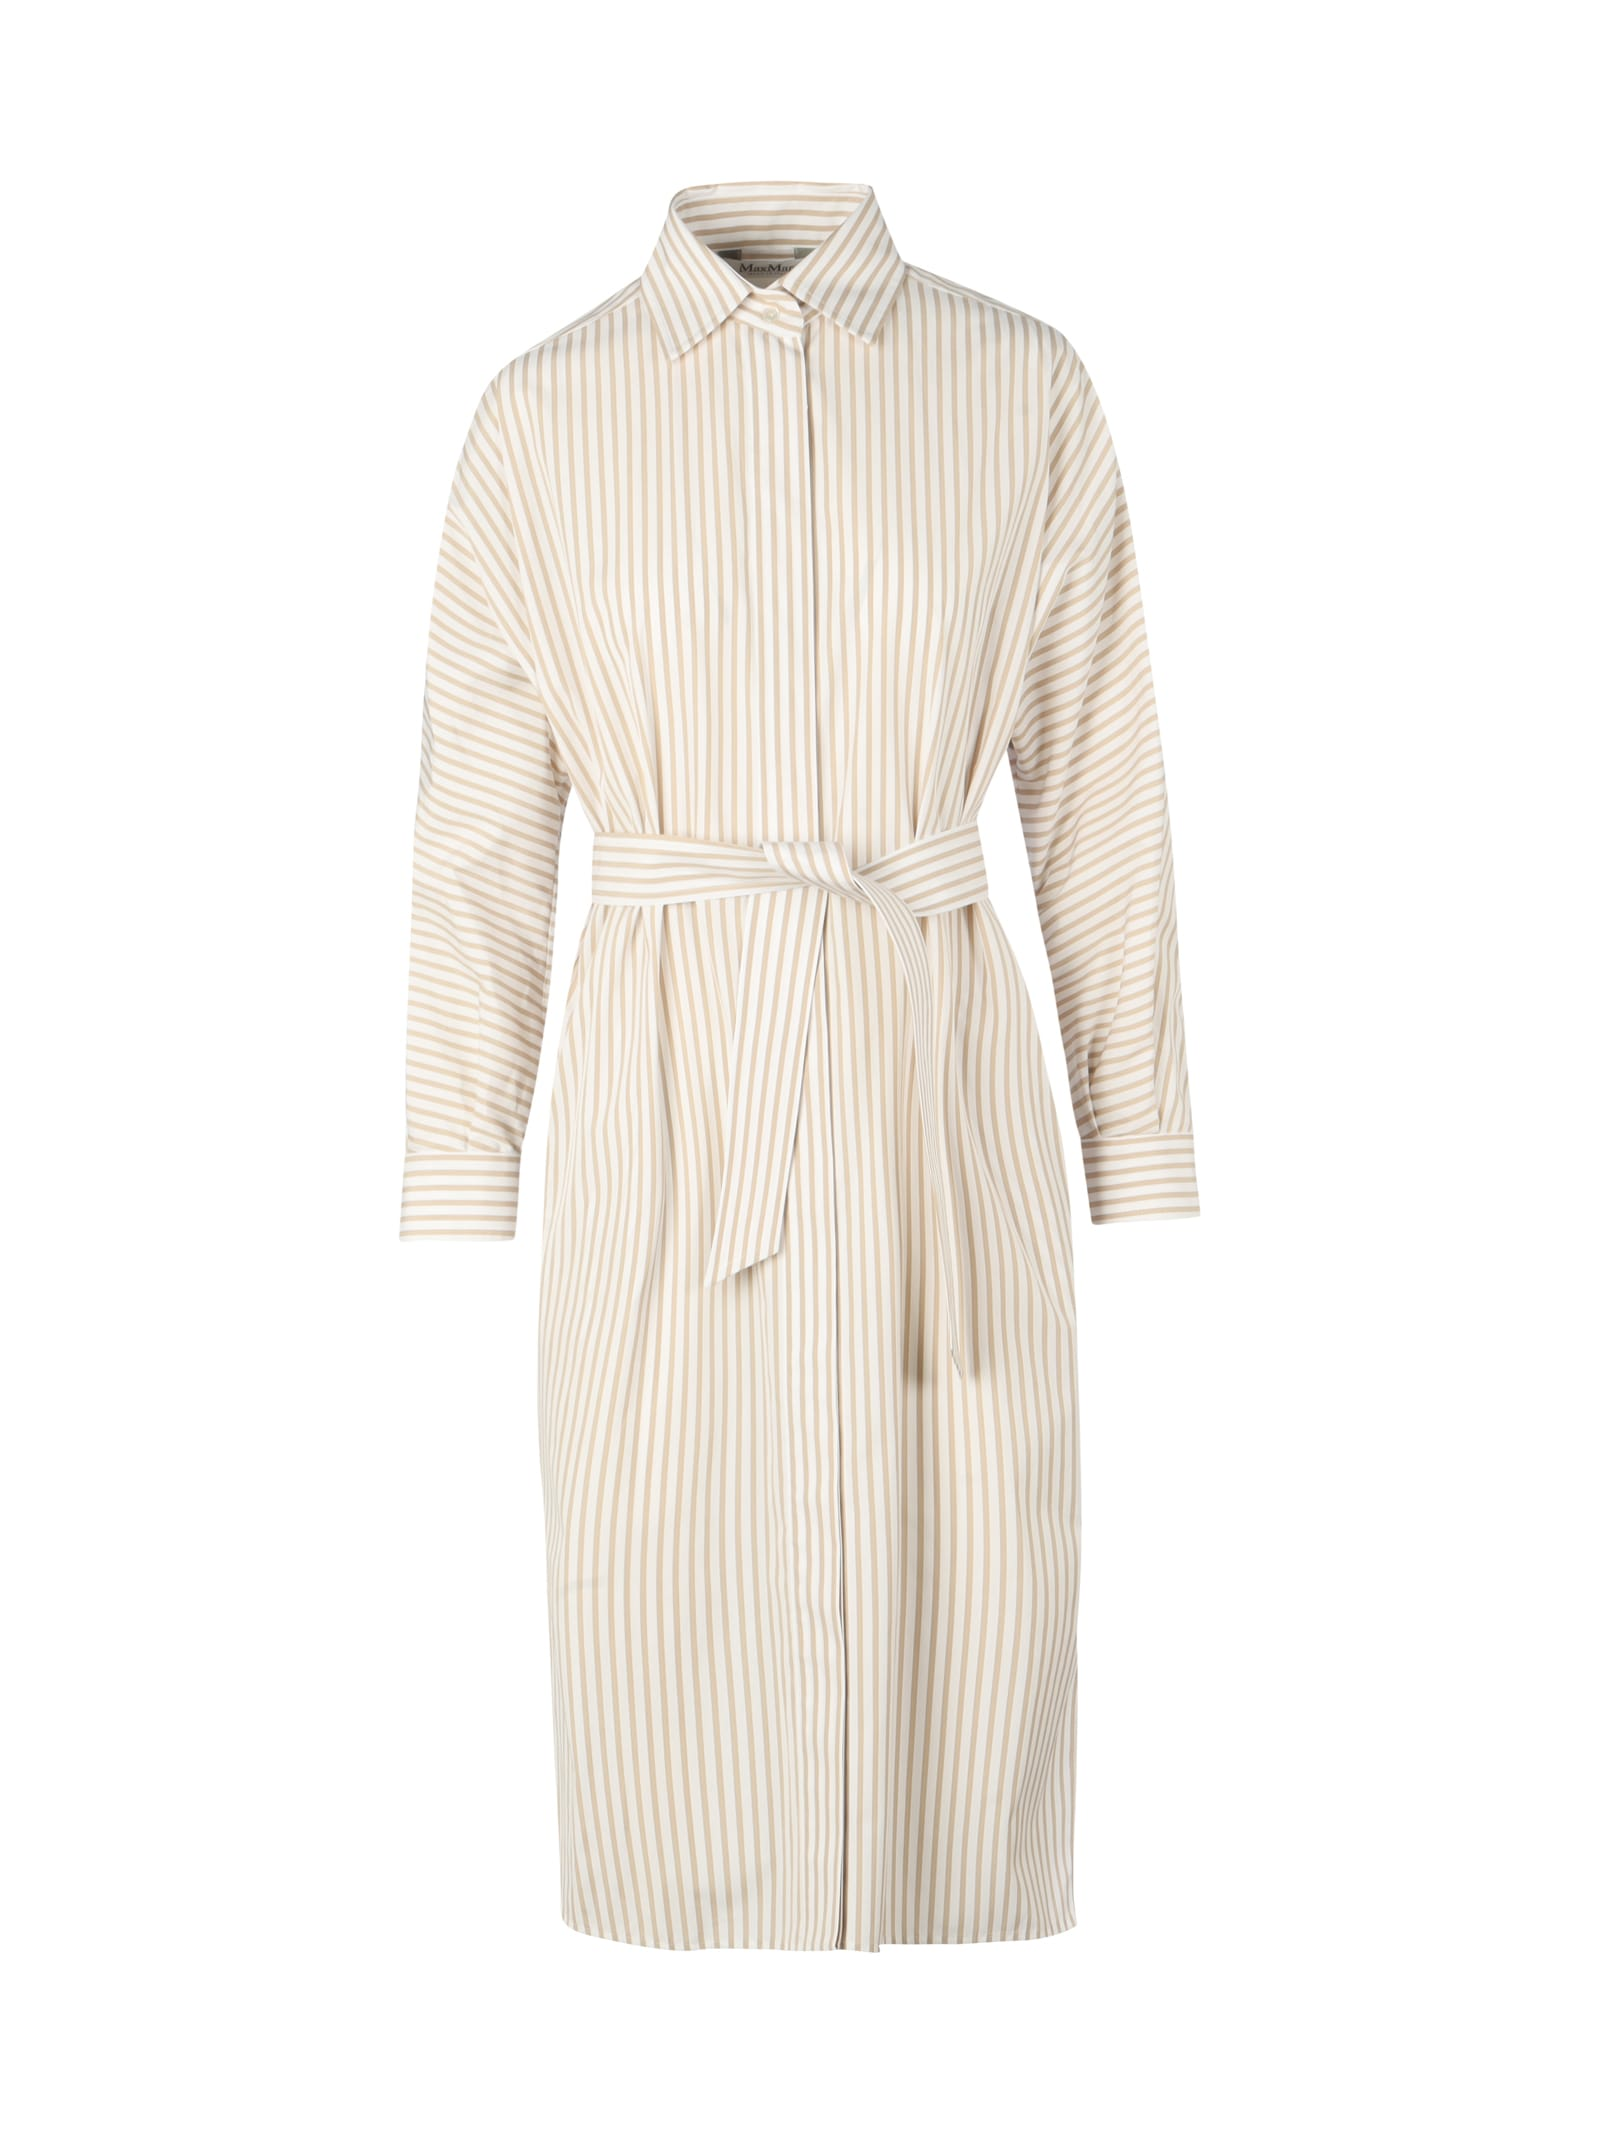 Max Mara Pedina Dress